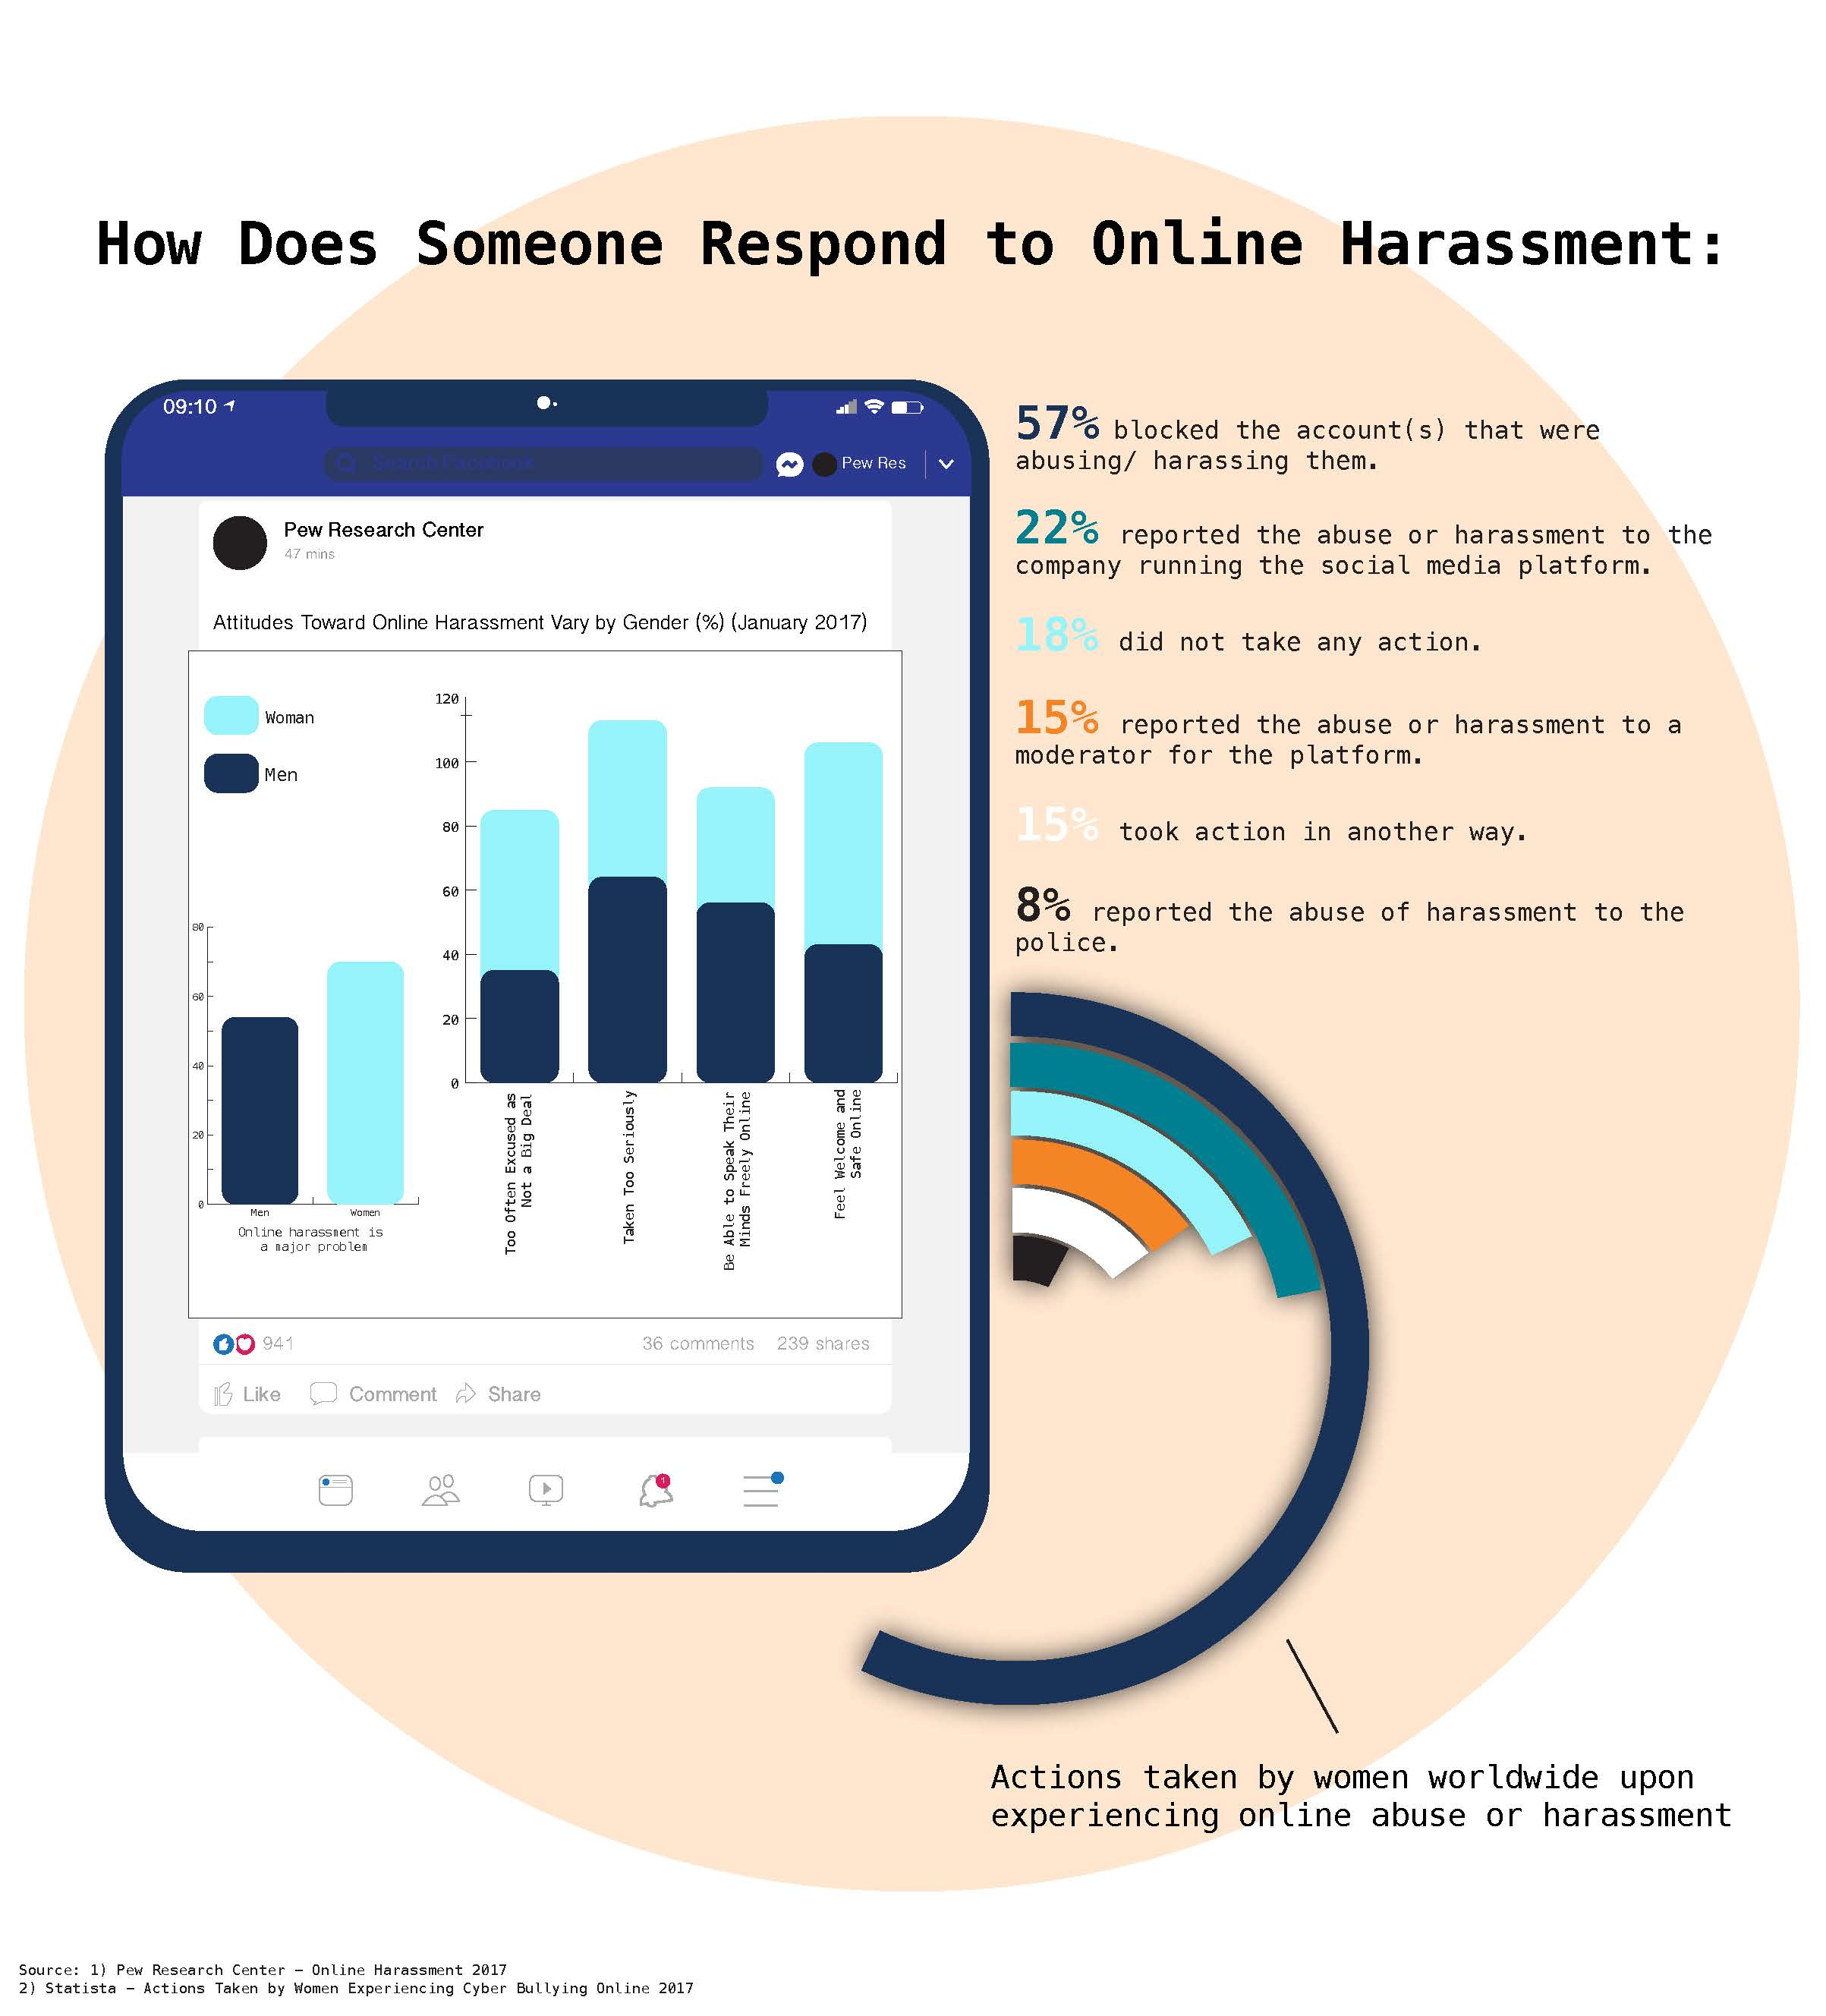 Who is Most Vulnerable Online?